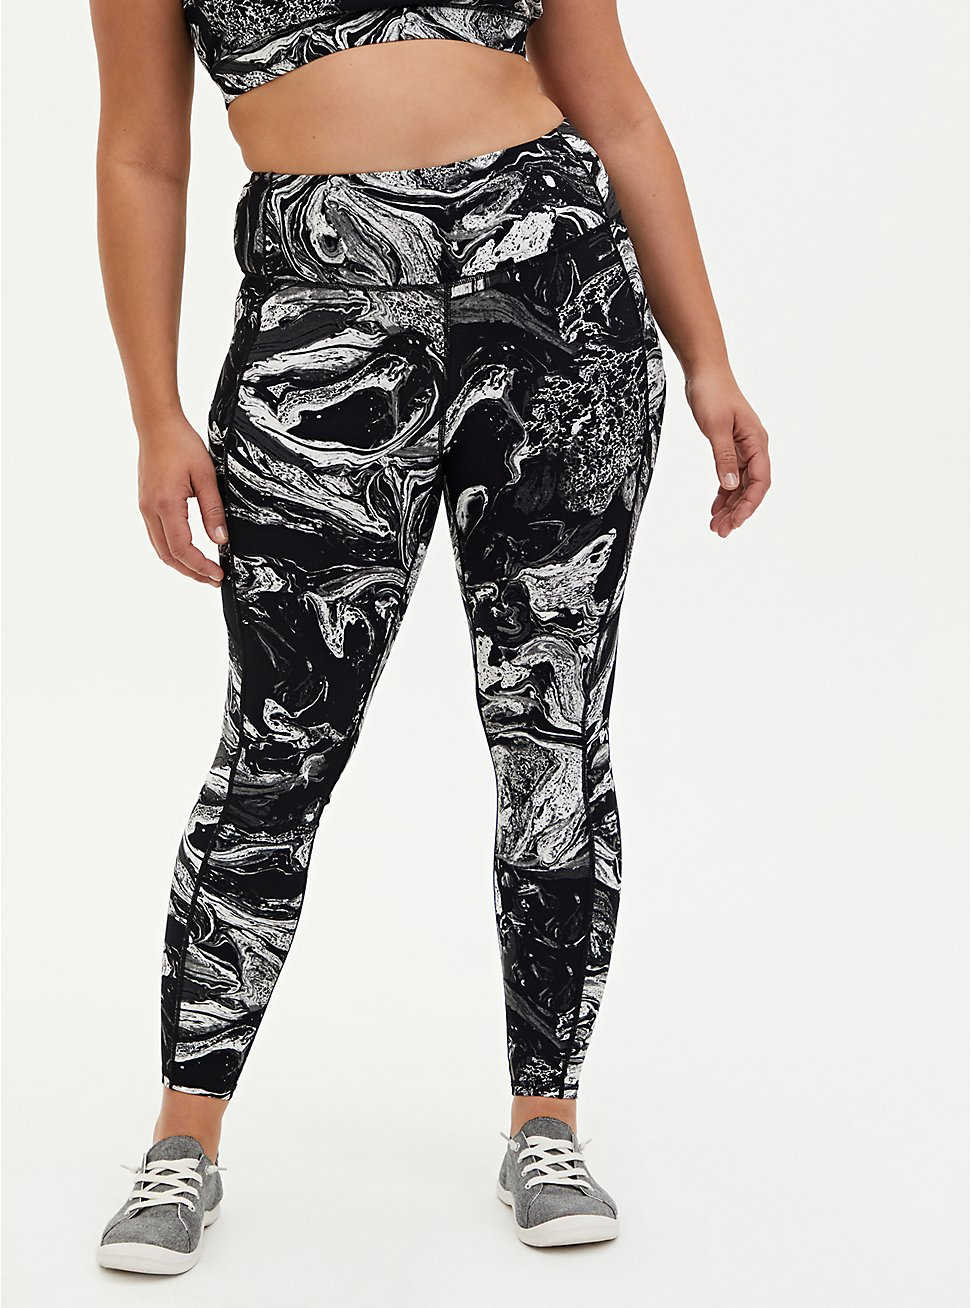 Black & White Marble Wicking Active Legging With Pockets, OTHER PRINTS, hi-res